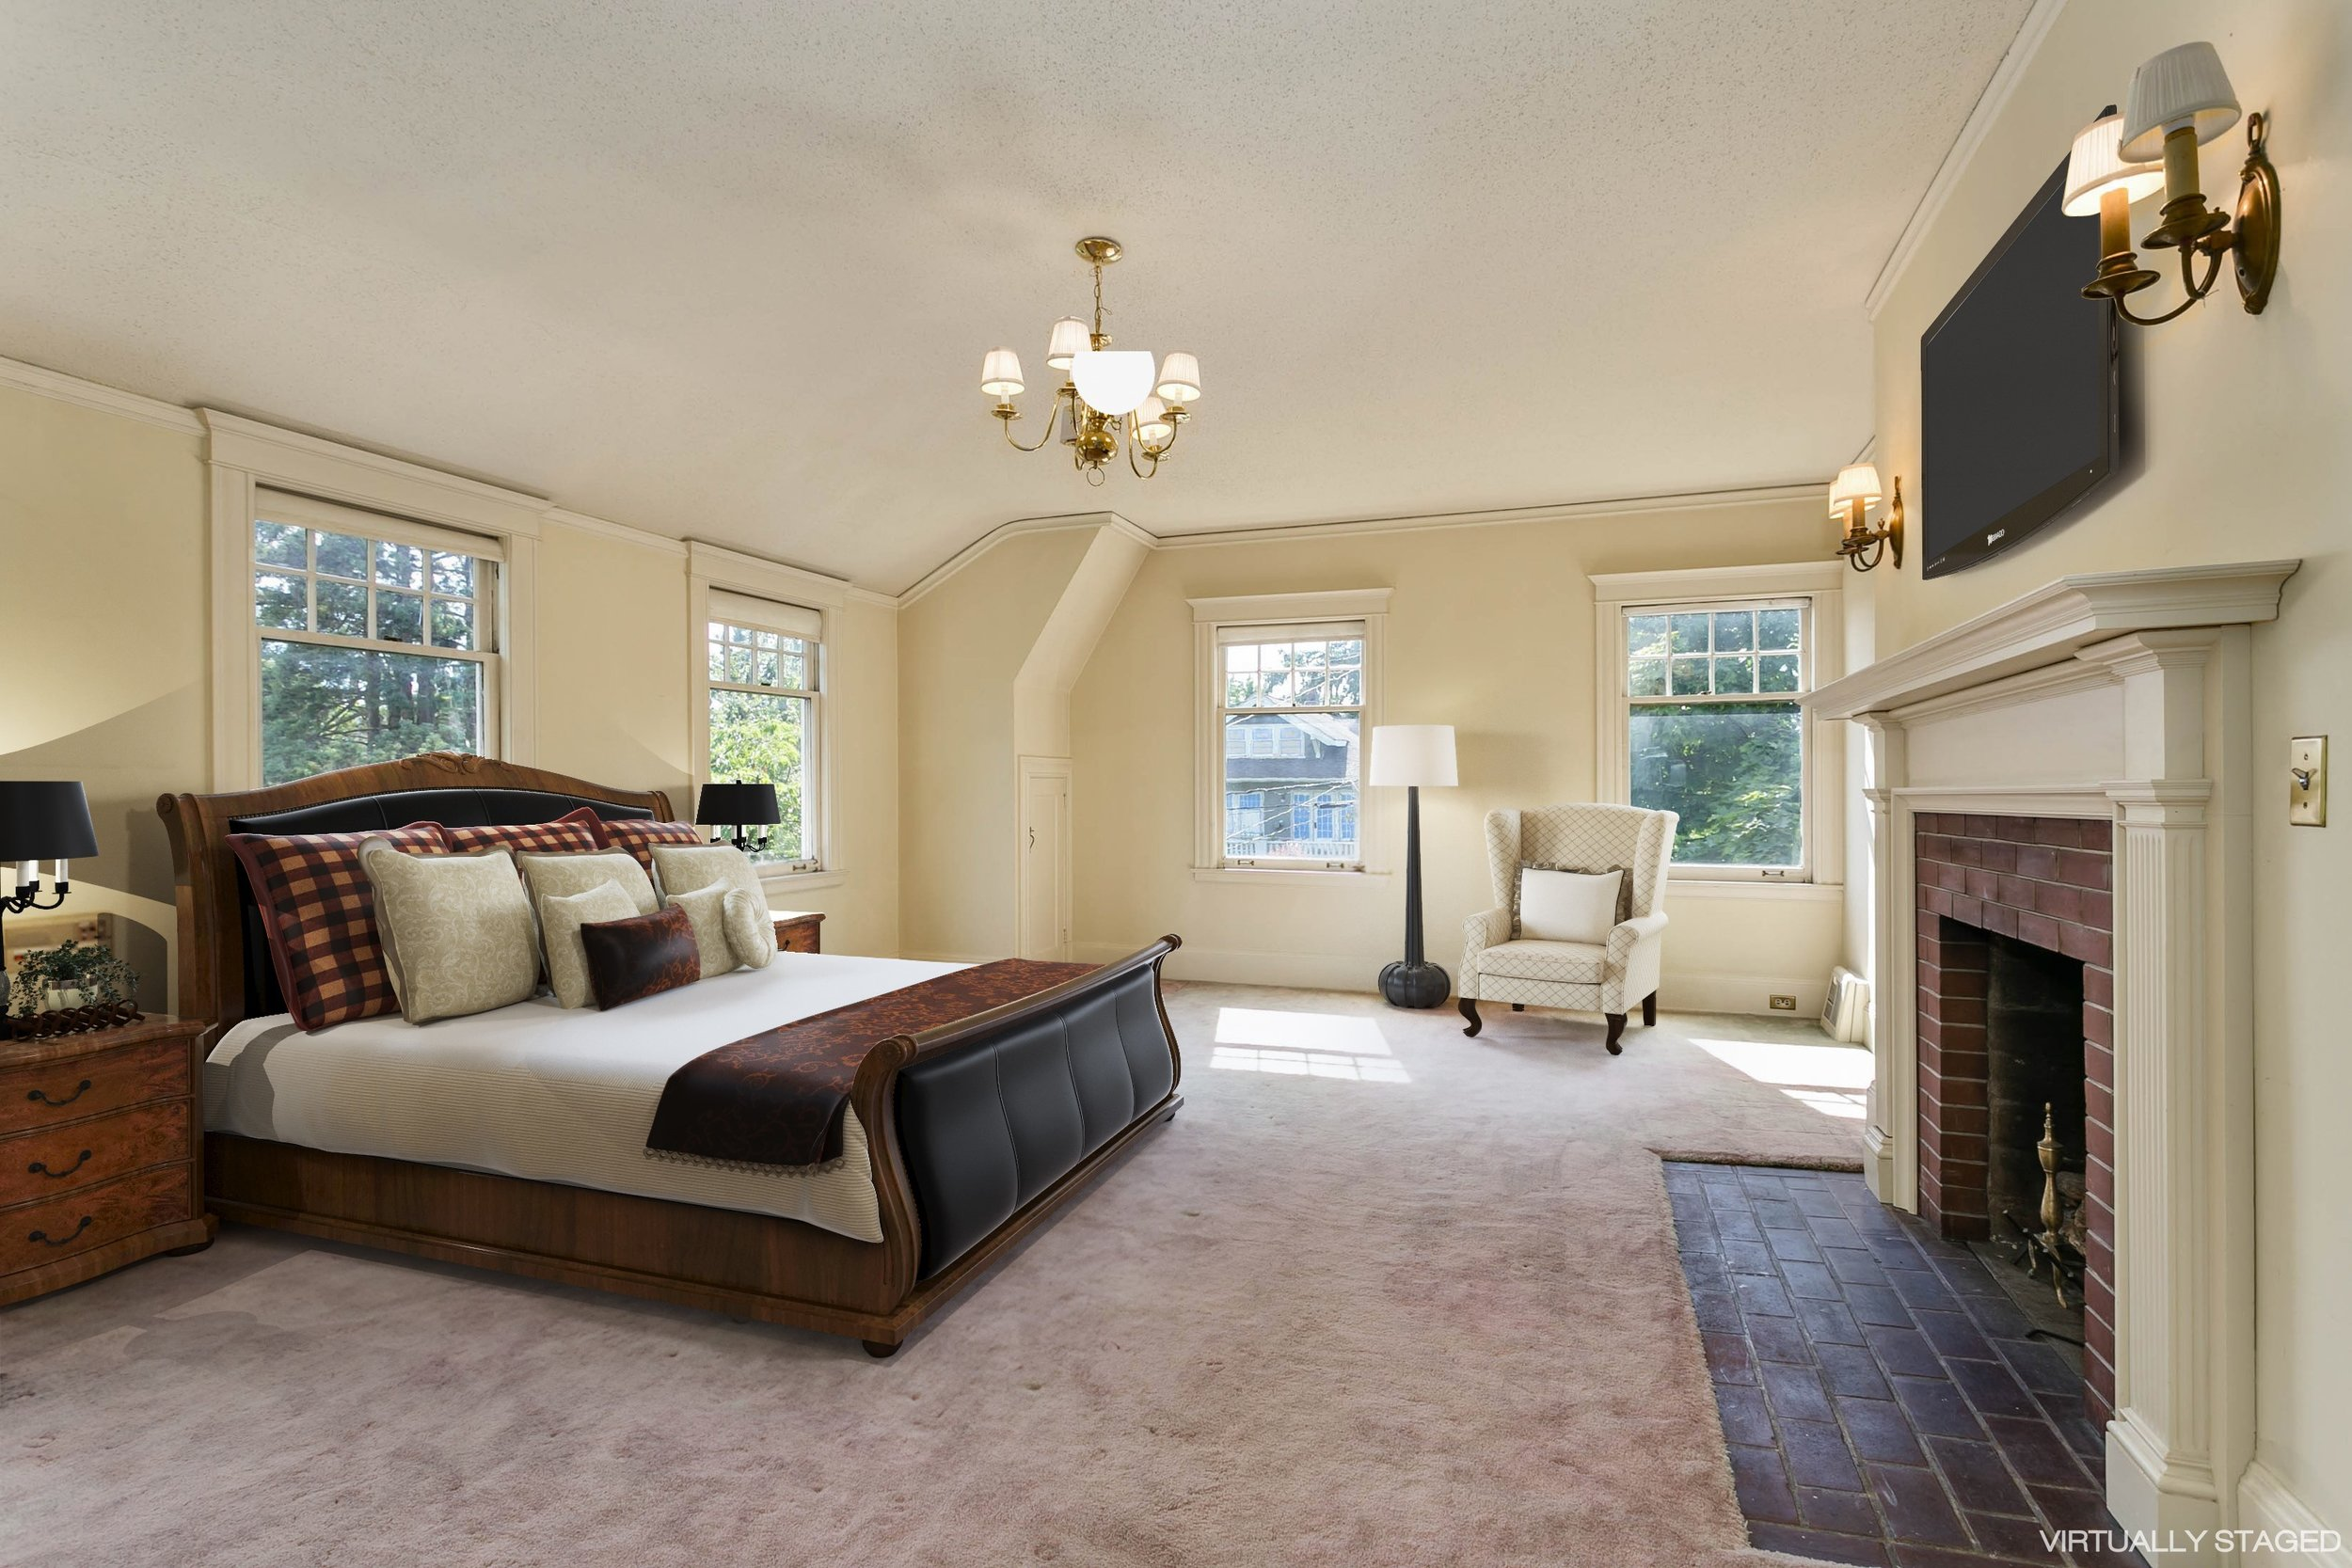 5_920FederalAveE_900004_MasterBedroom_HiRes.jpg